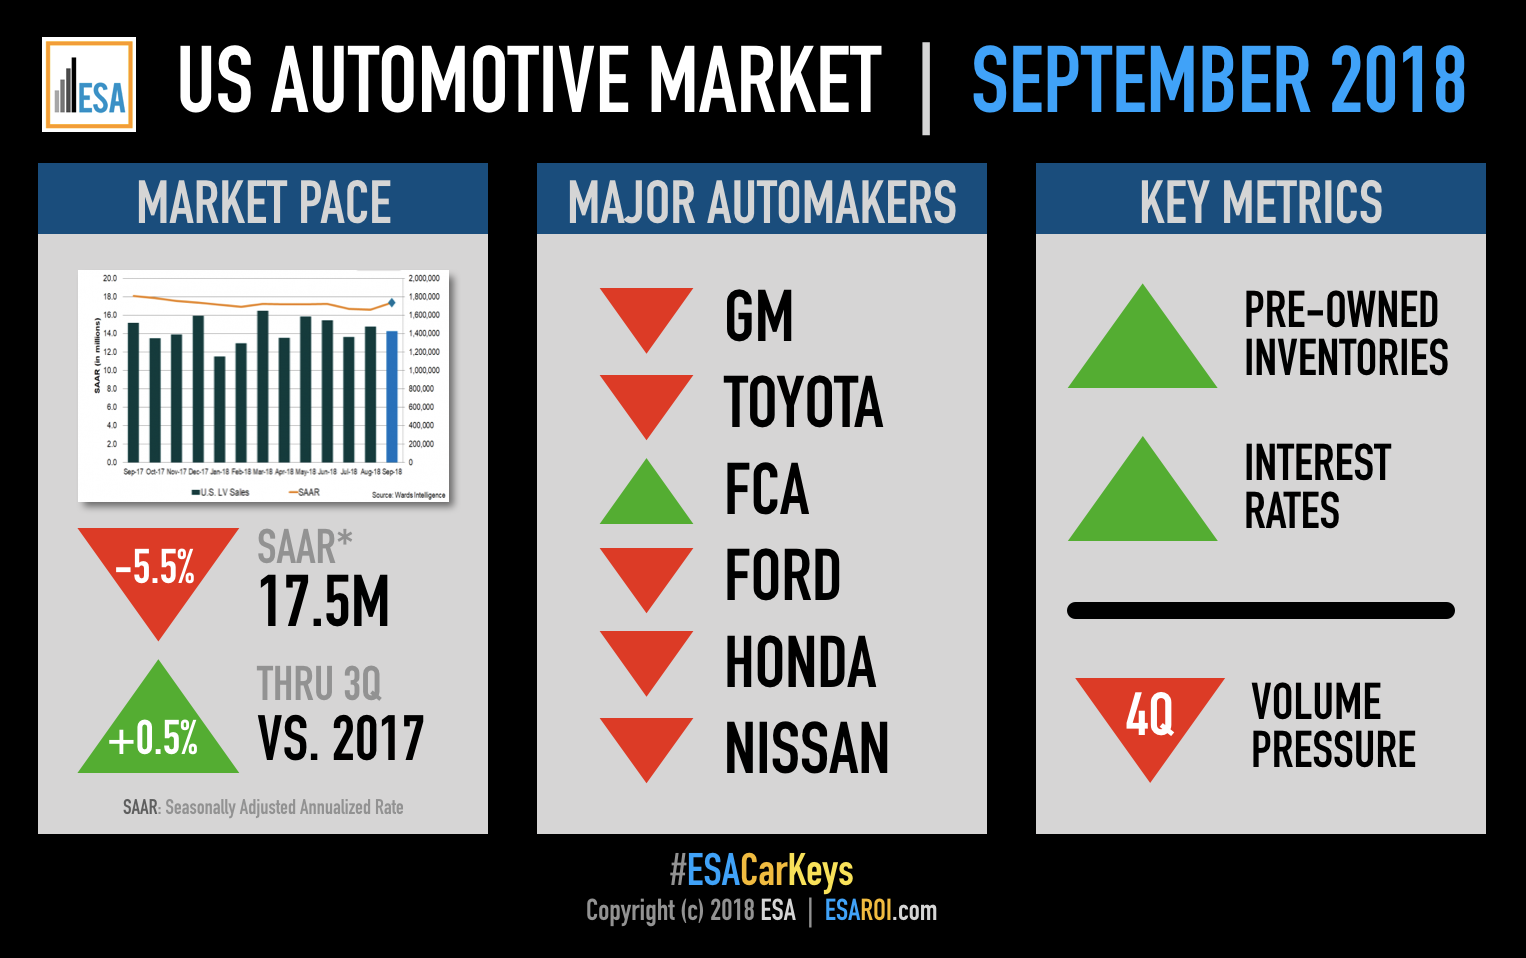 esa-car-keys-september-2018